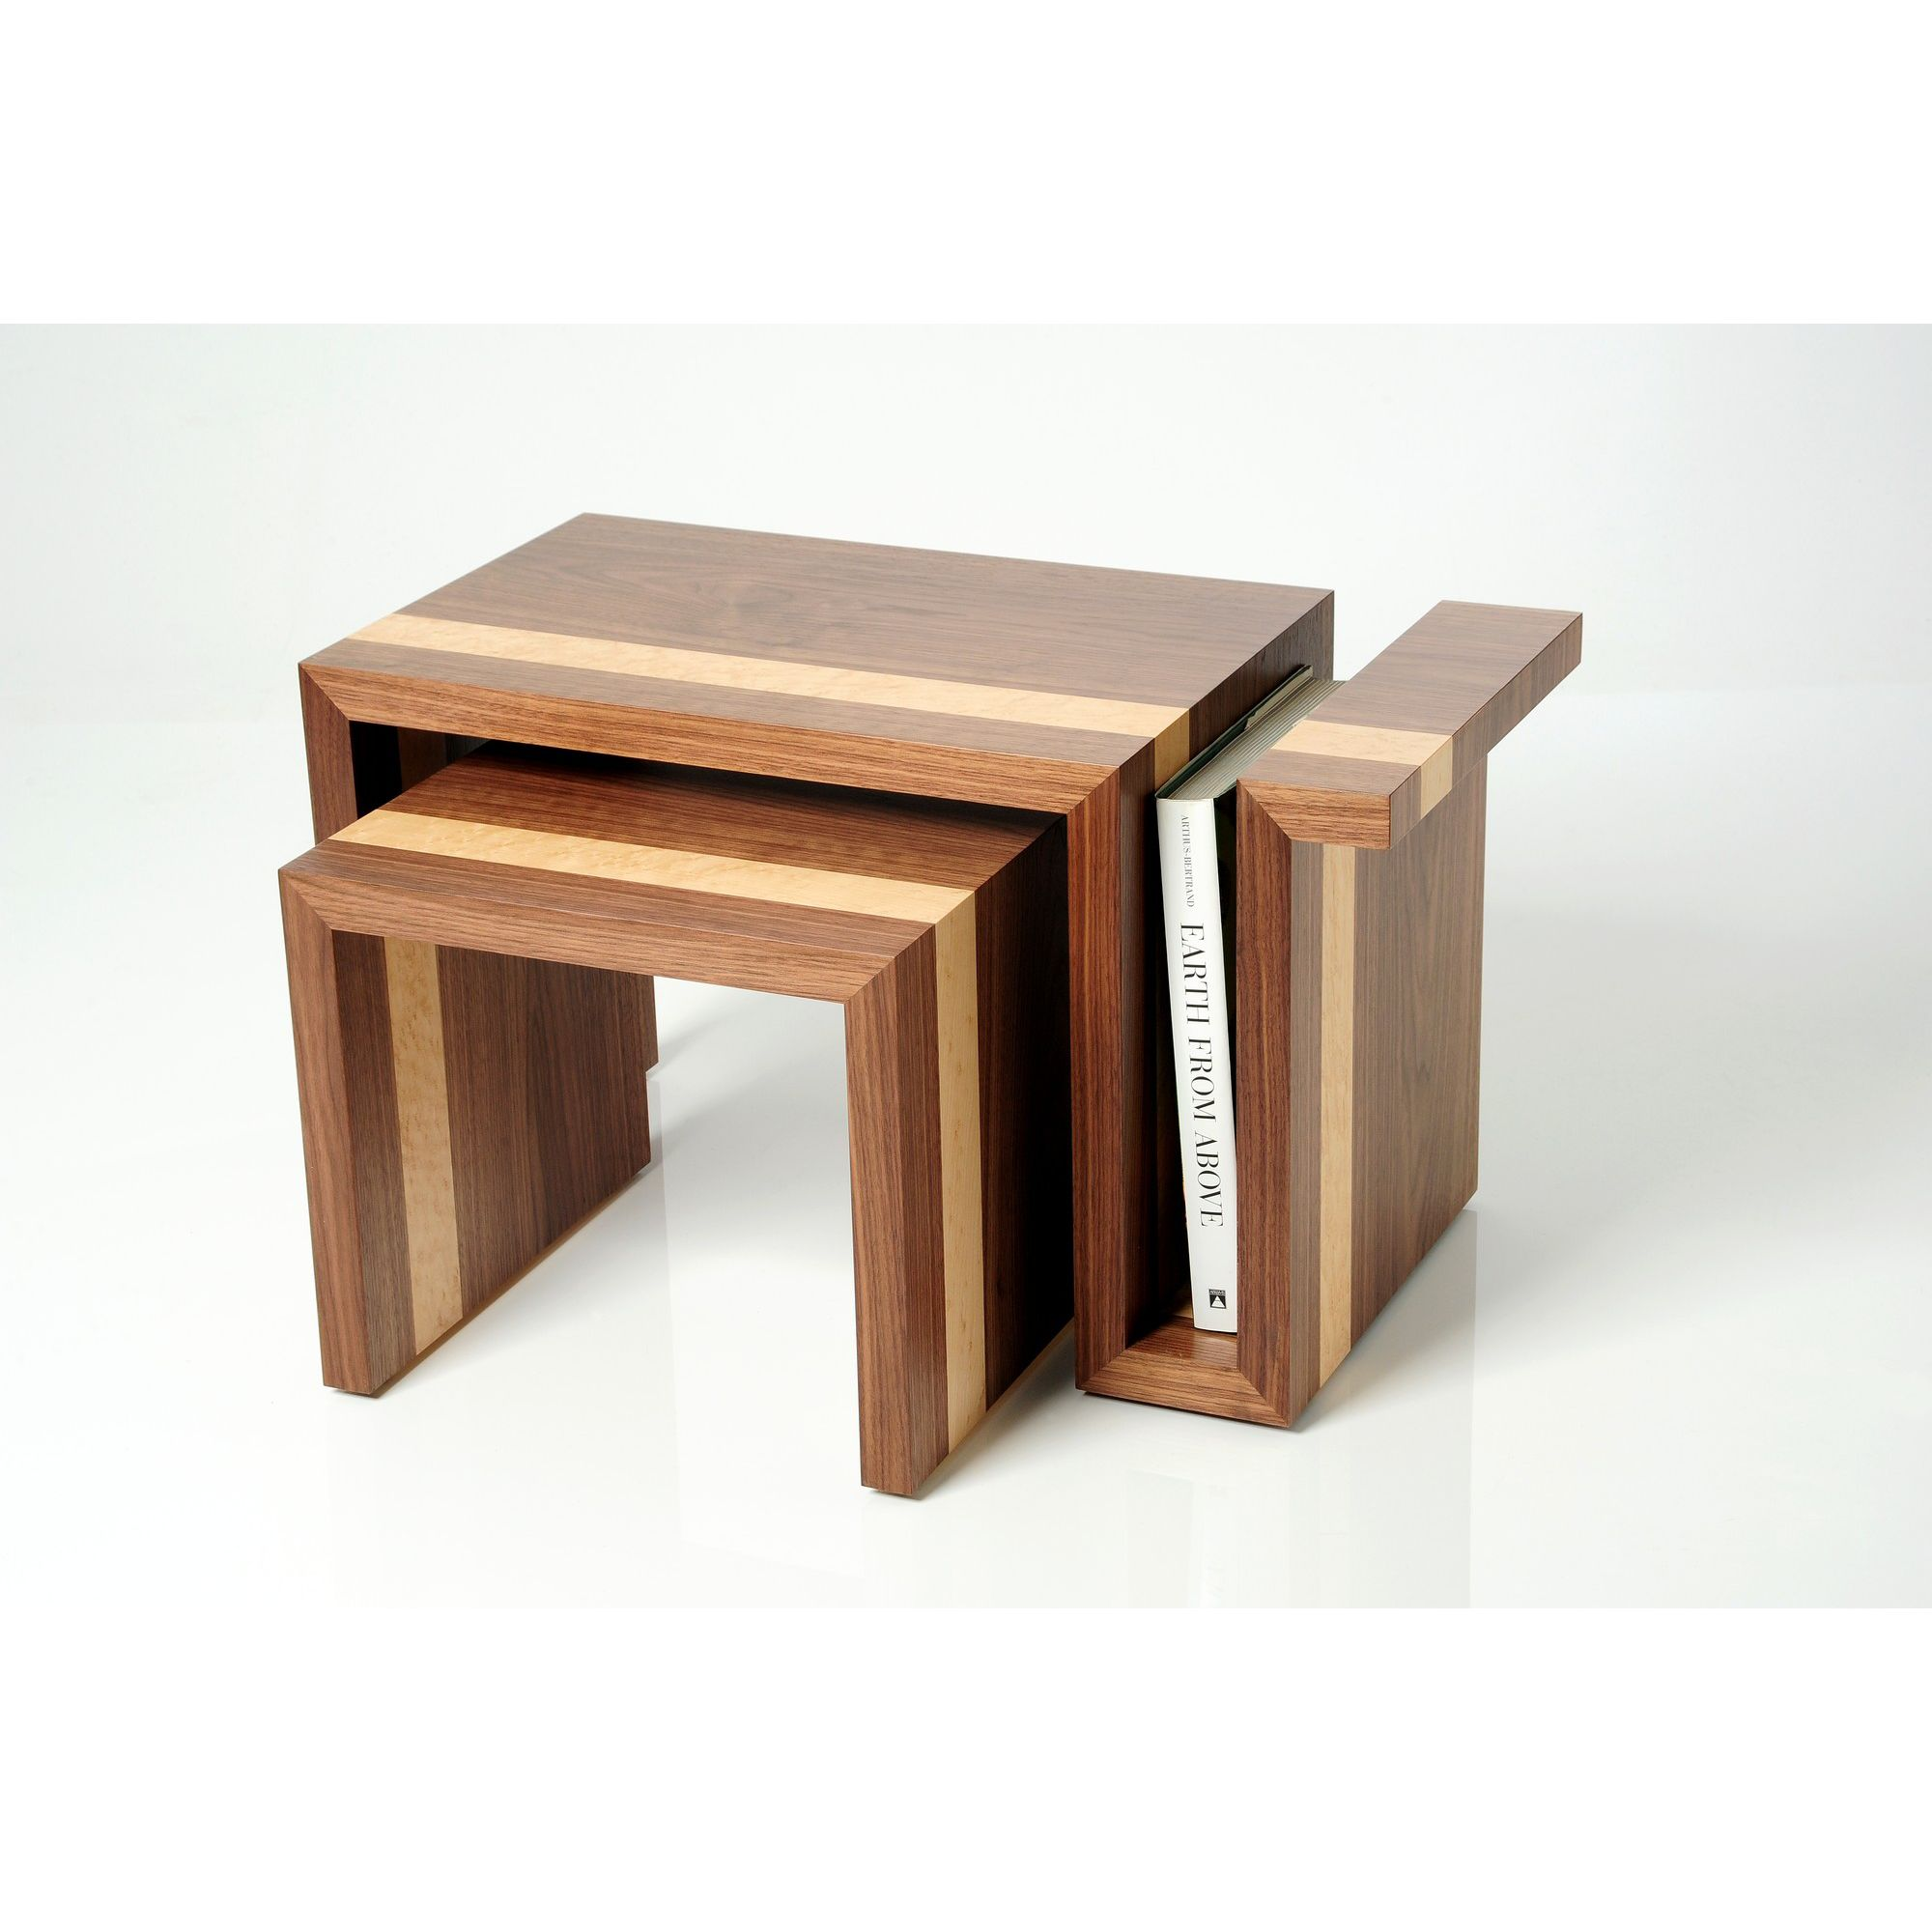 Trefurn Revival Nest Coffee Table - Black Walnut and Birds Eye Maple at Tesco Direct